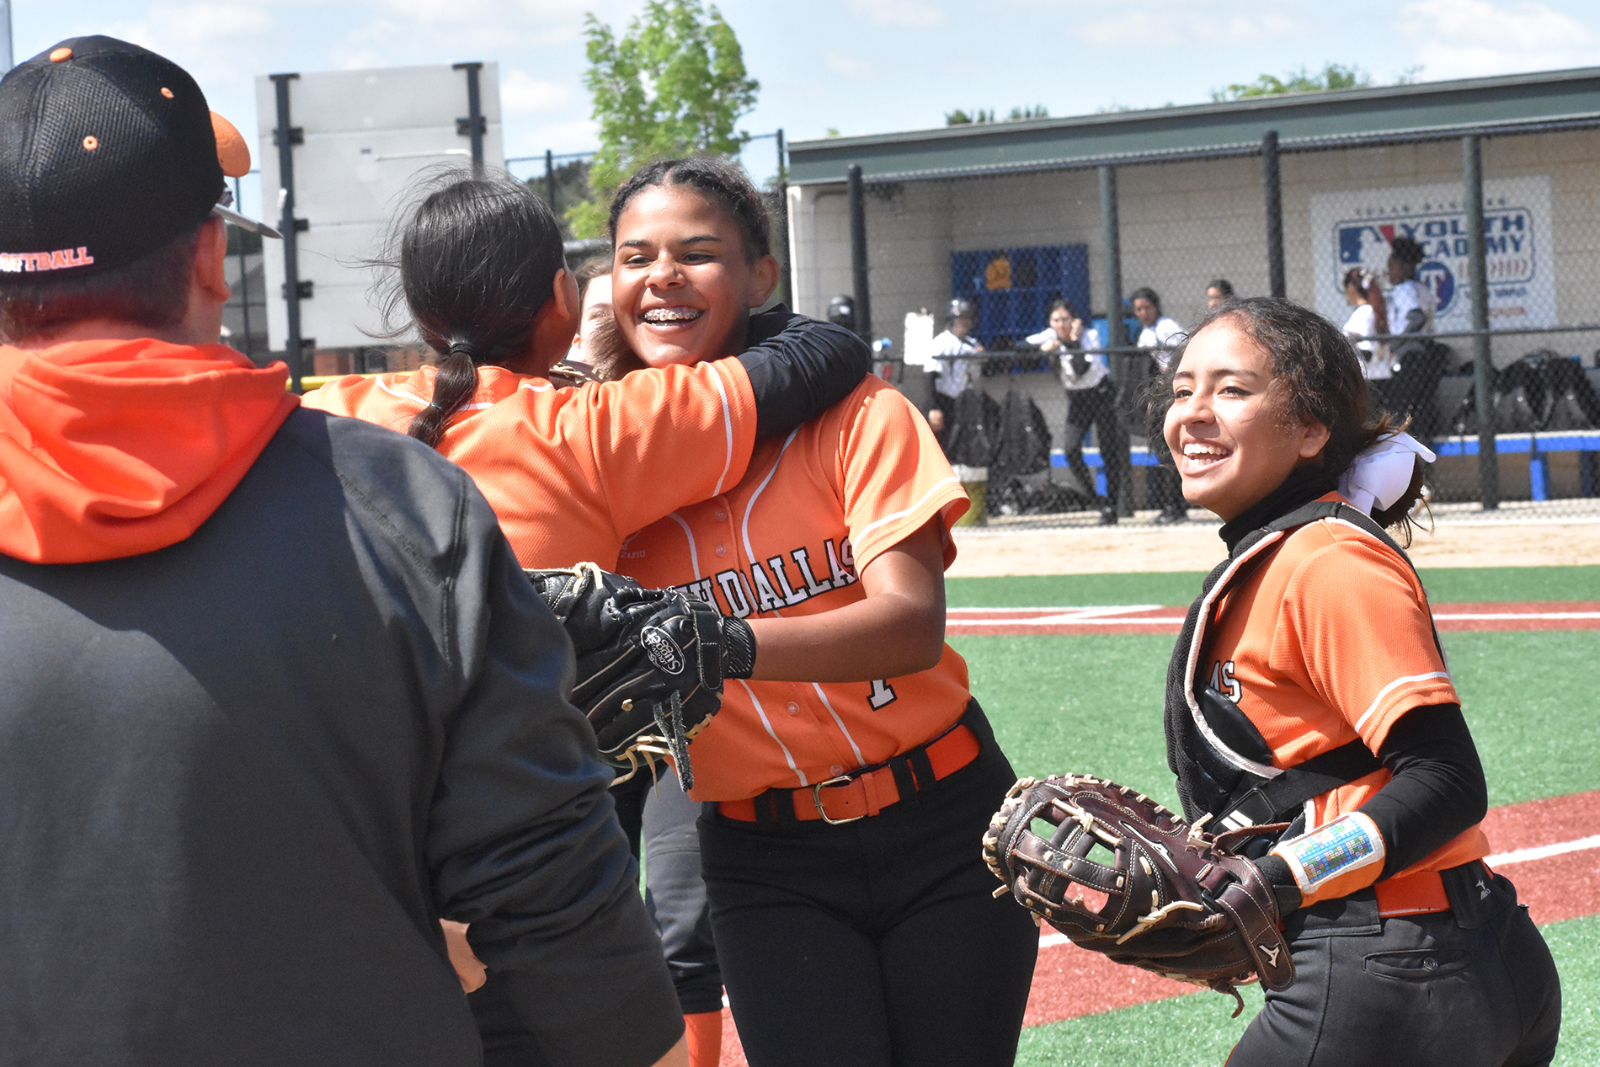 North Dallas to play Carter for second place Monday; Patrice Leavy sets pace in 25-11 win